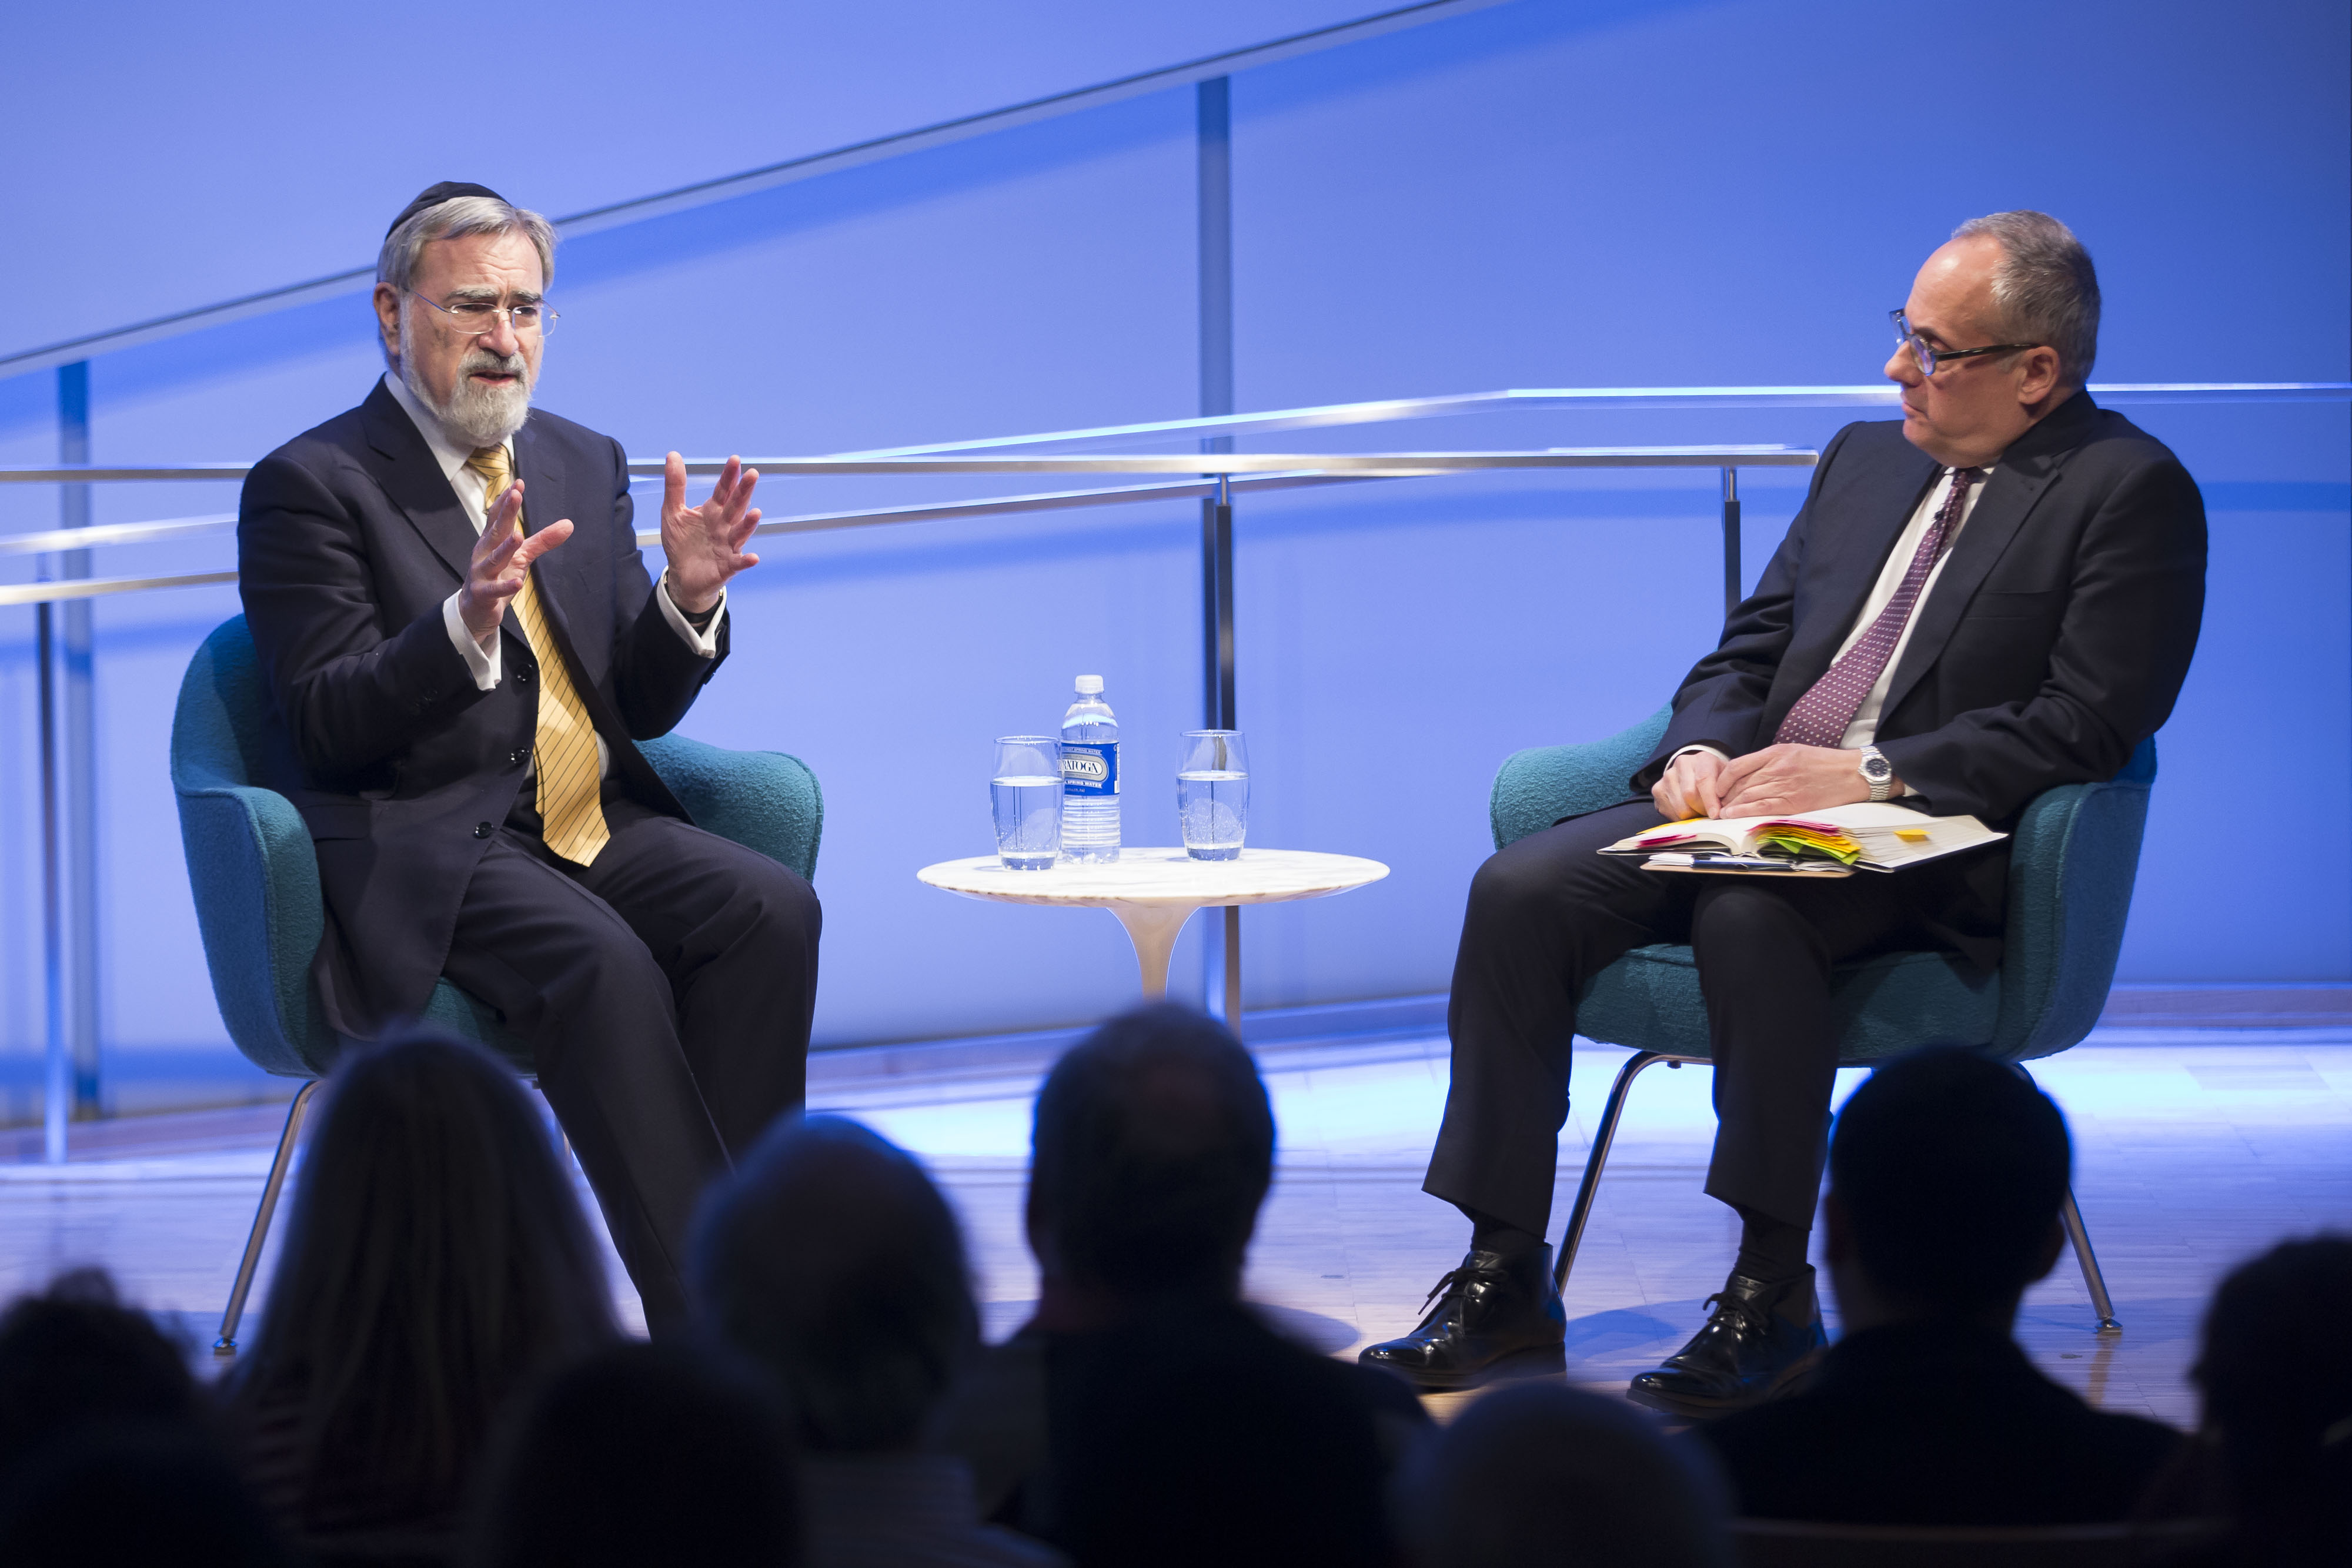 In this wide-angle shot, which shows audience members at the 9/11 Memorial Museum auditorium in in silhouette in the foreground,  the Rabbi Jonathan Sacks, who had retired as chief rabbi of the United Hebrew Congregations of the British Commonwealth when he visited in 2016, raises both his hands as he gestures in conversation with Cliff Chanin.